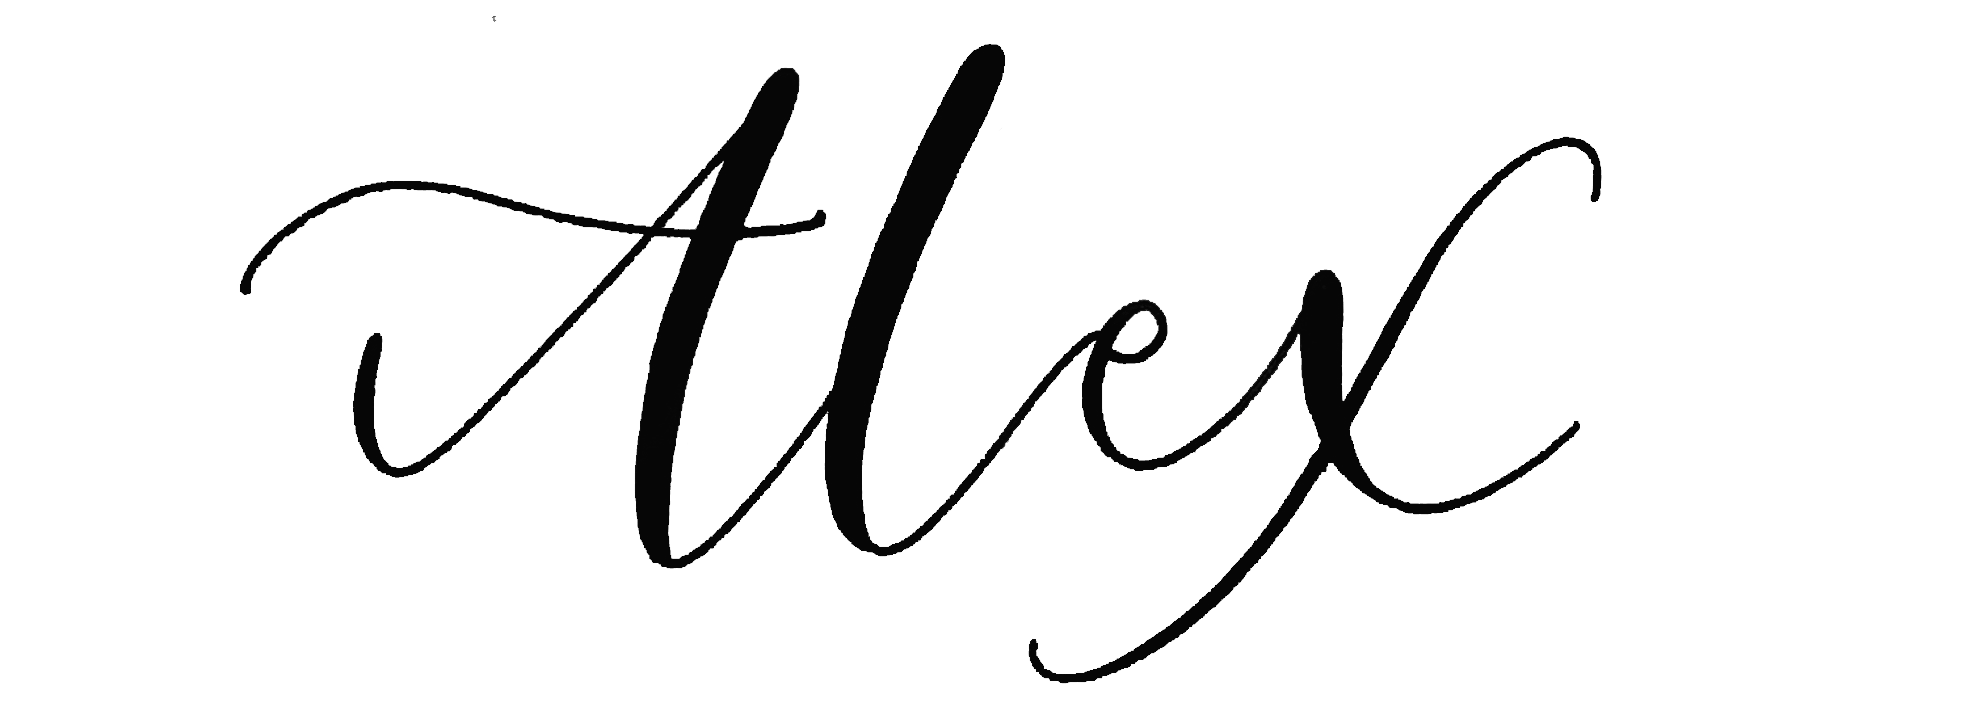 Hd Android Wallpapers 3d Alex In Calligraphy 24749 Tweb